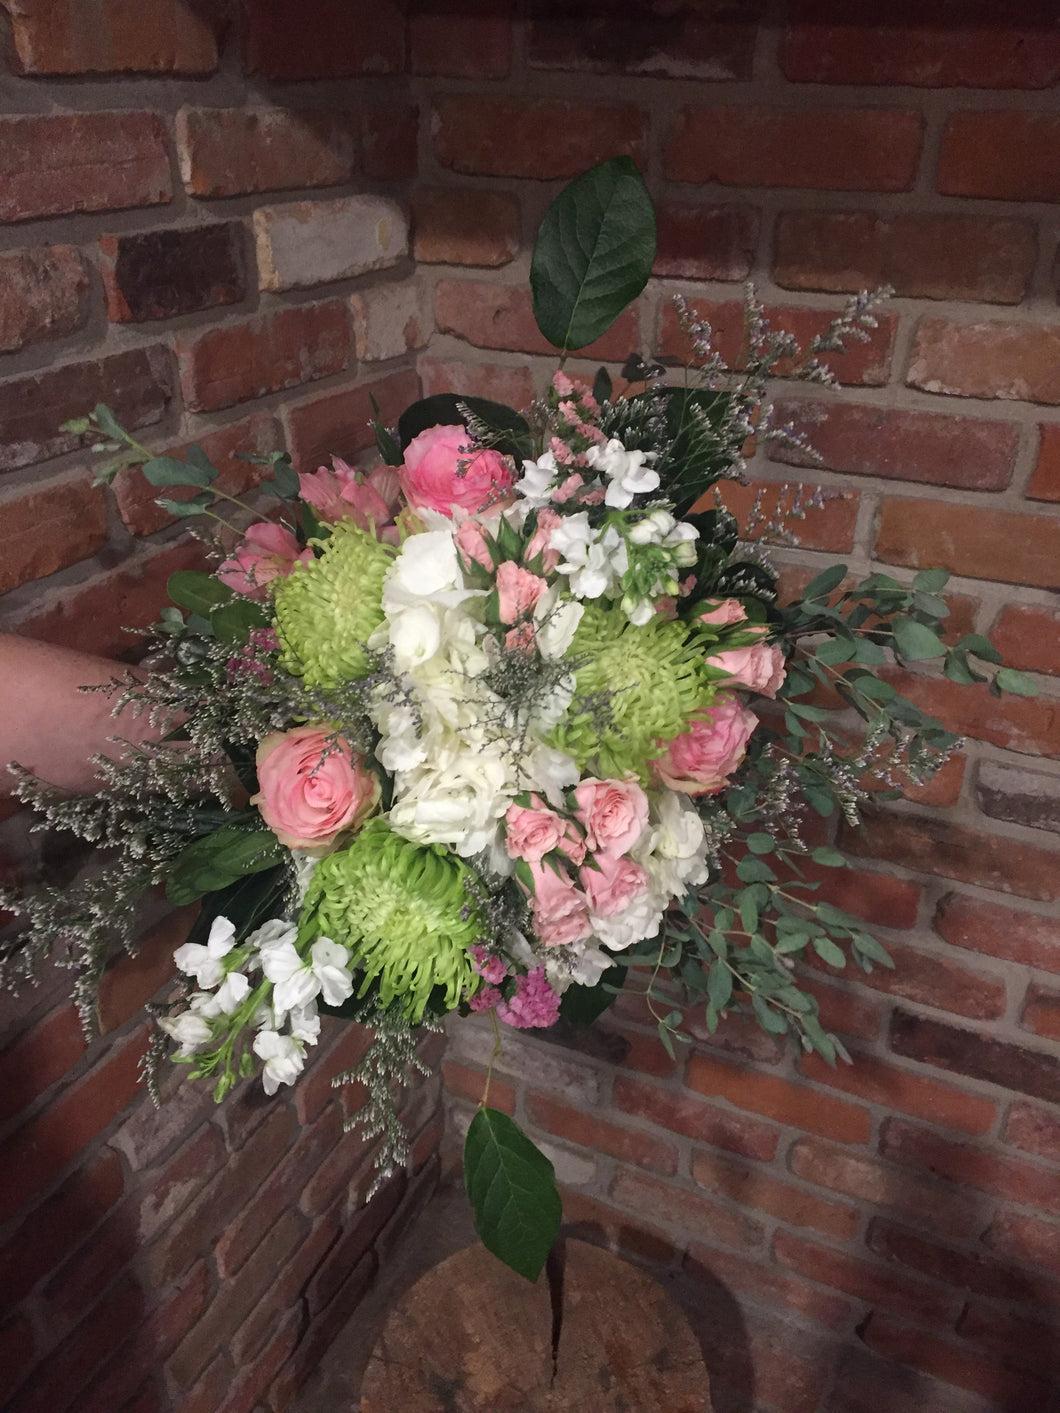 A gorgeous collection of sweet scented florals in a soft palette of white, pink and green skirted with premium foliages. Includes jumbo white hydrangea, pink roses, pink spray roses, white stocks, green spider mums, lavender limonium and pink statice. Hand tied and ready for your recipient to drop into her vase! Sure to take her breath away!